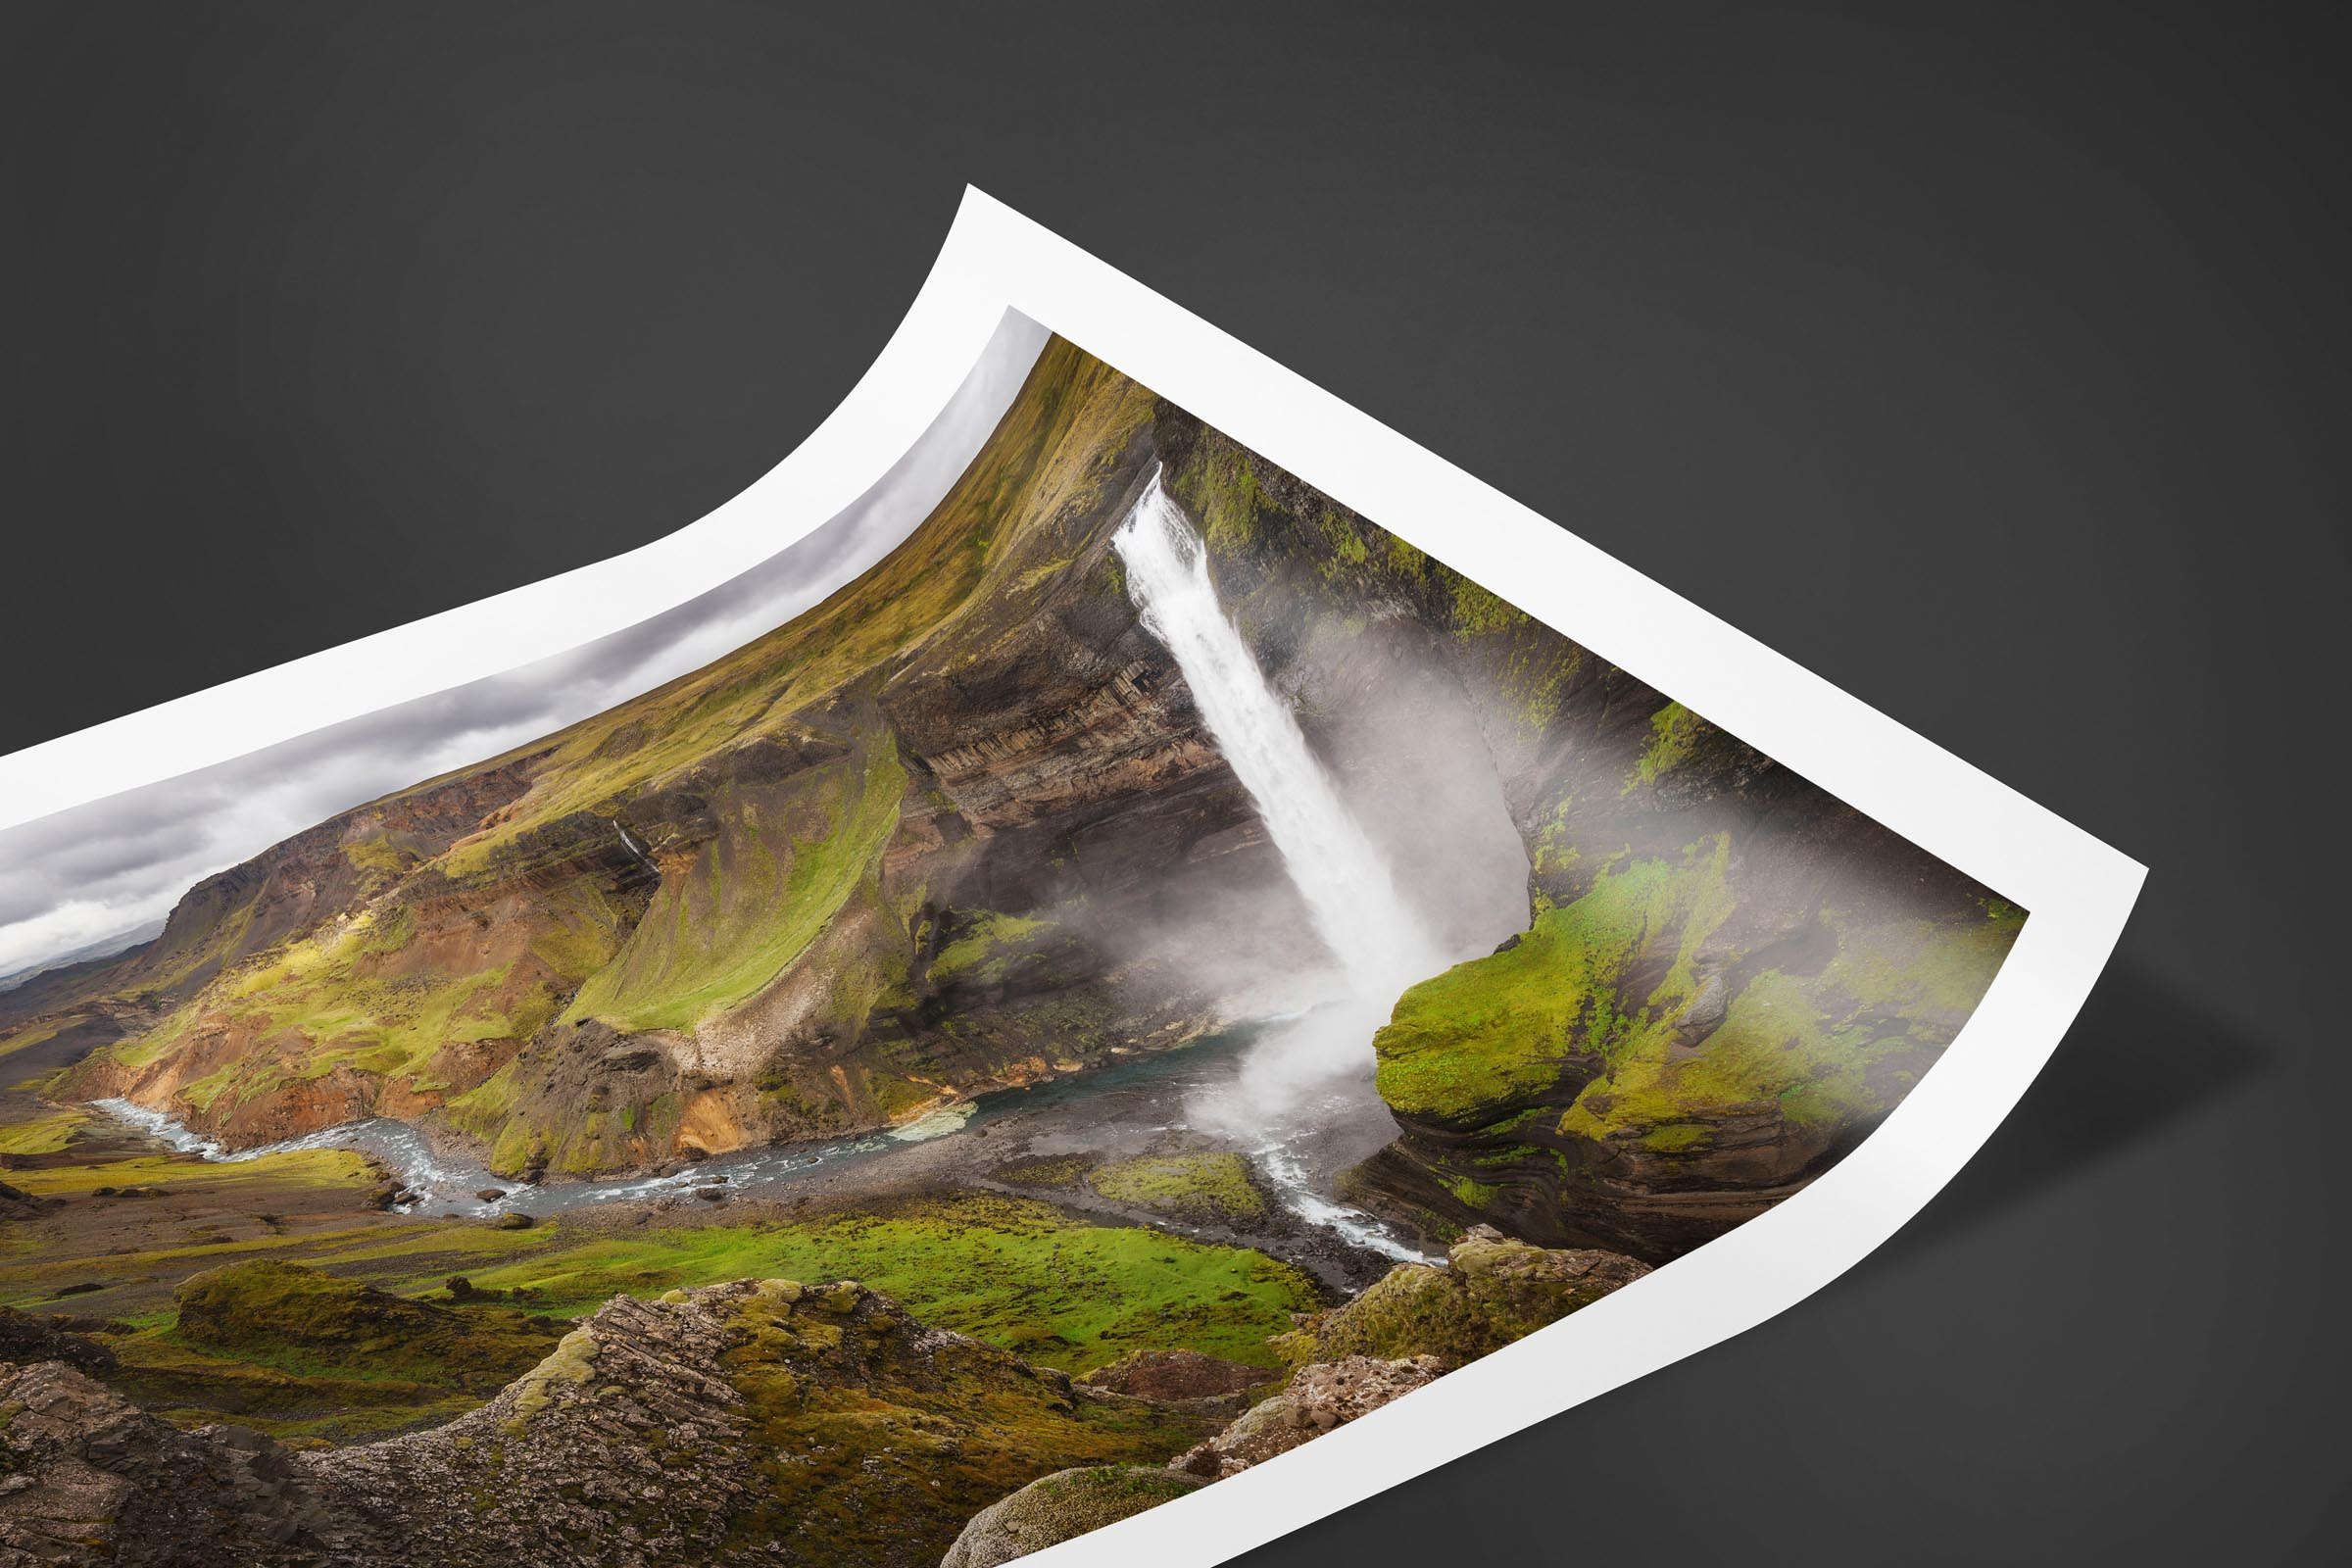 Fine art limited edition print of Haifoss Waterfall in Highlands, Iceland by Brent Goldman Photography